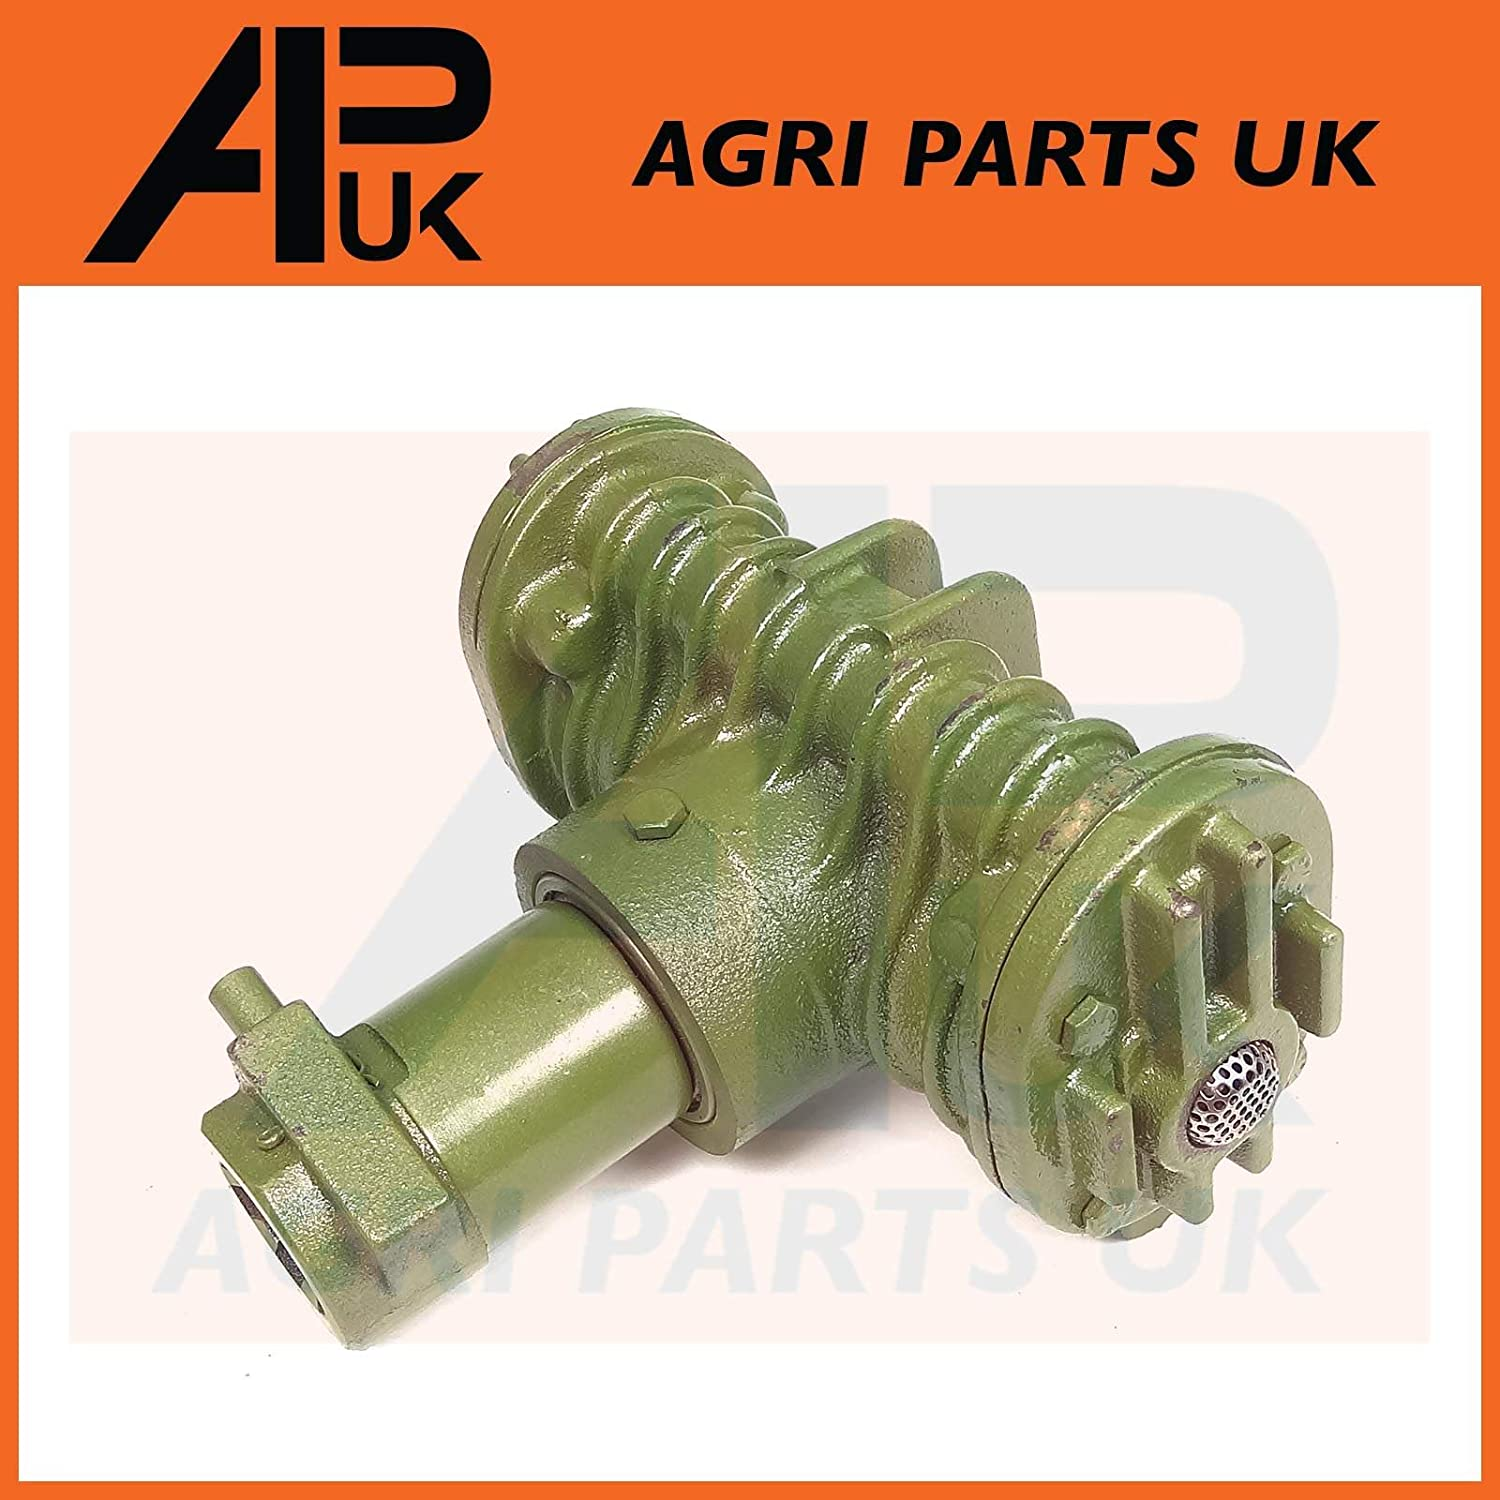 APUK Tractor PTO Air Compressor Twin Cylinder with hose//pipe For field or on site